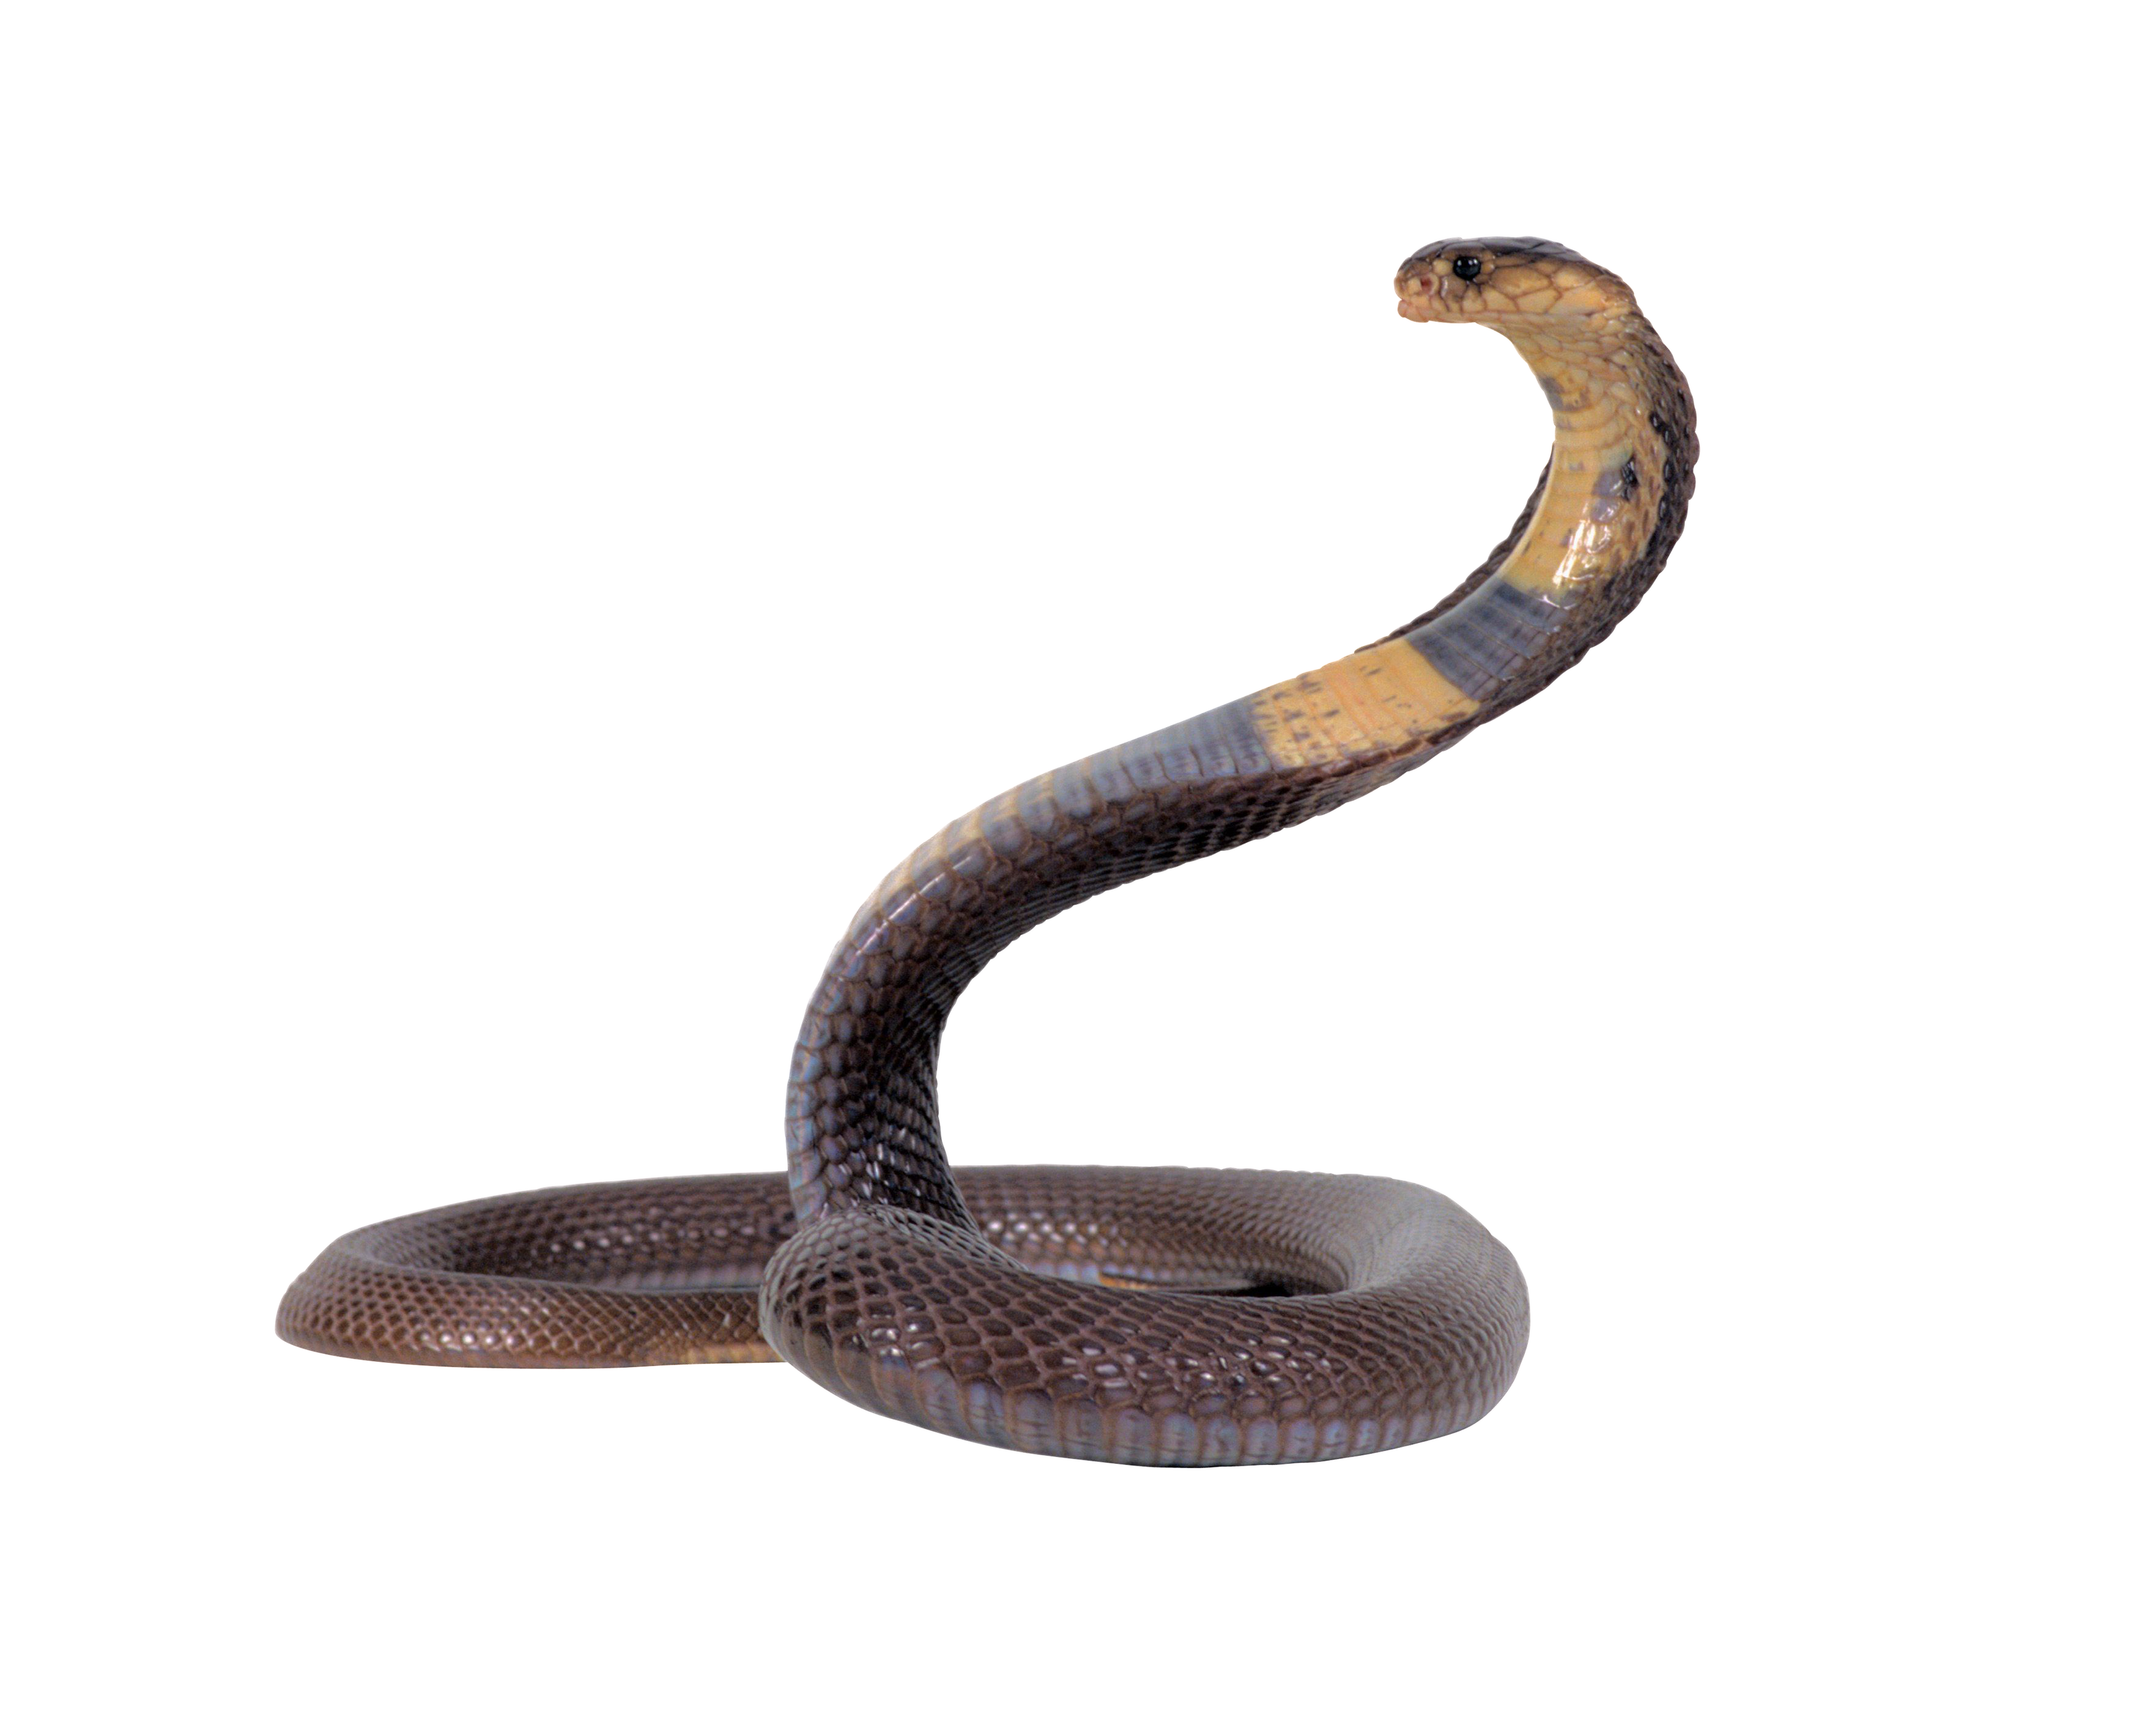 Snake transparent png by AbsurdWordPreferred